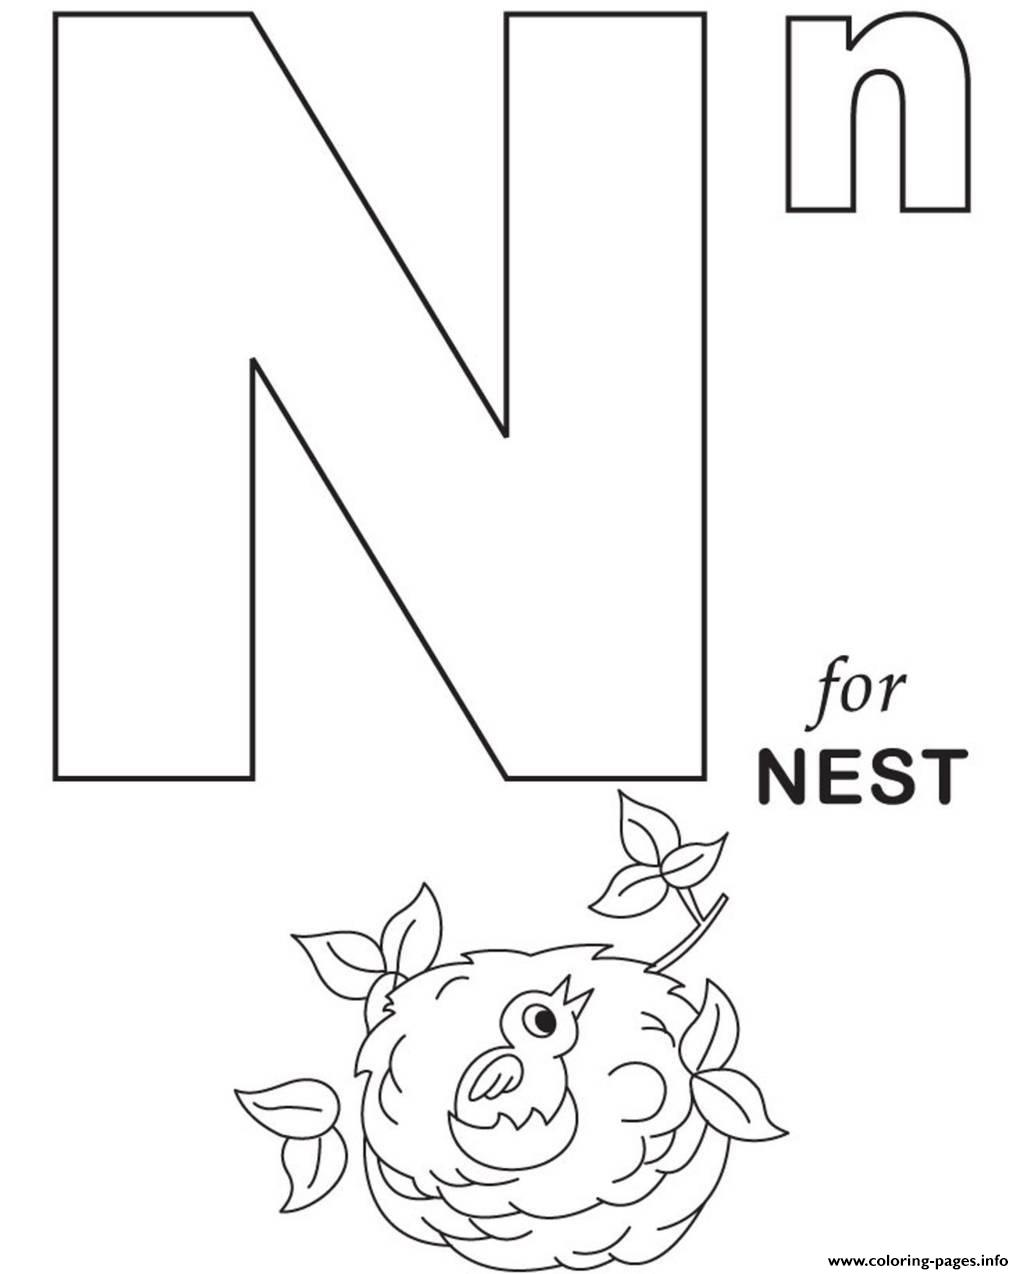 Free Alphabet S N For Nest12d9 Coloring Pages Printable